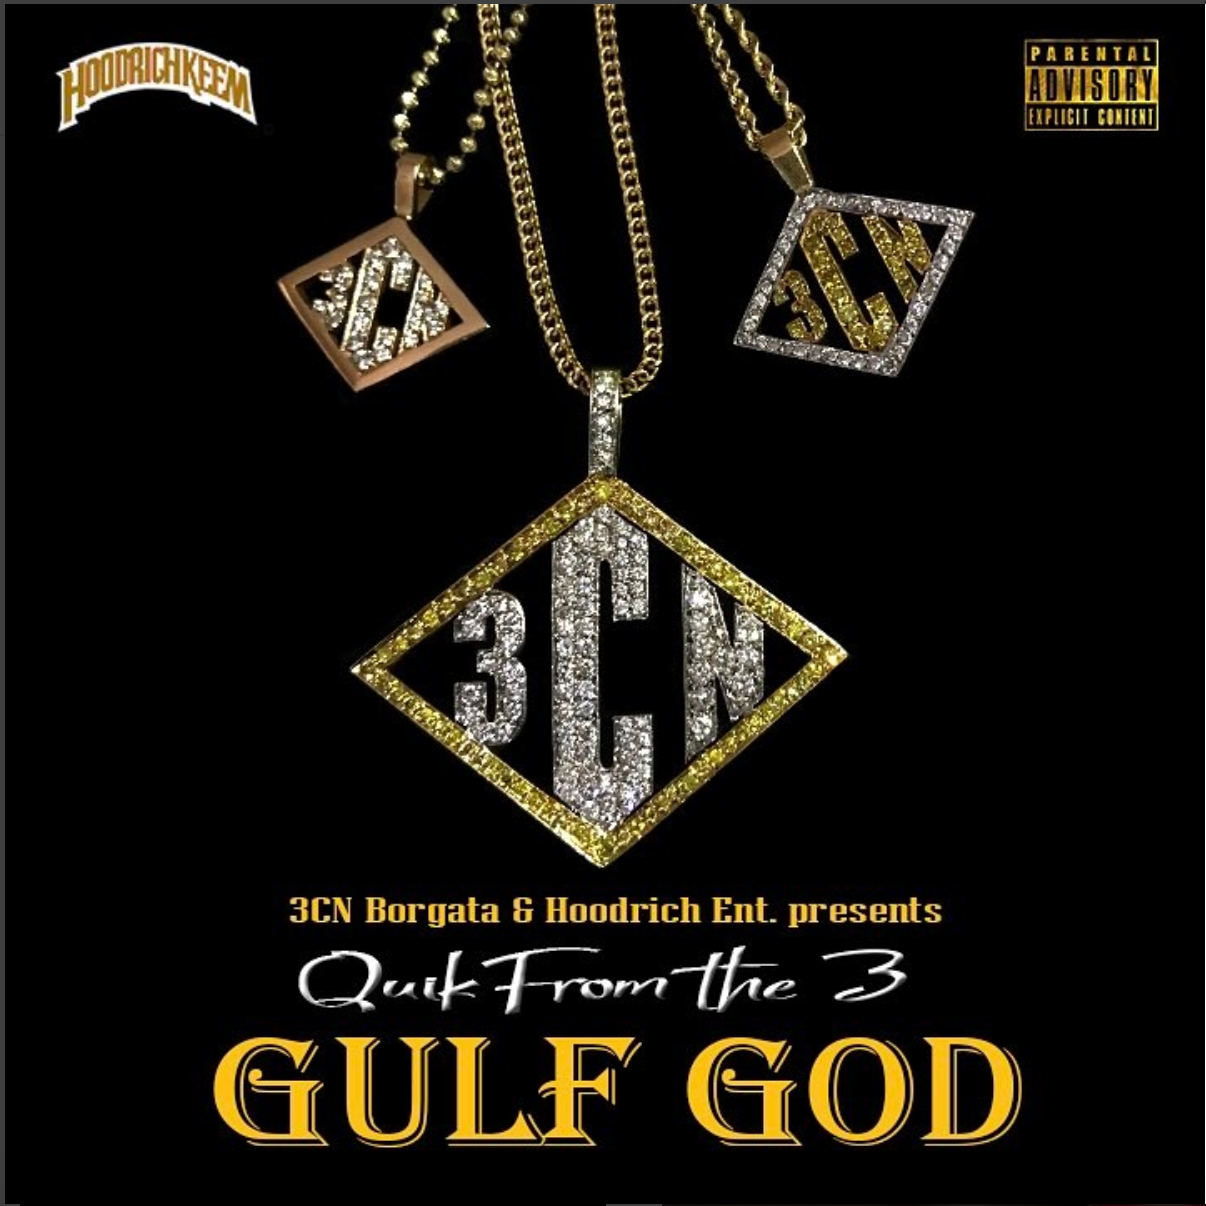 Quik From The 3 – Gulf God Mixtape + Through The Roof Visual